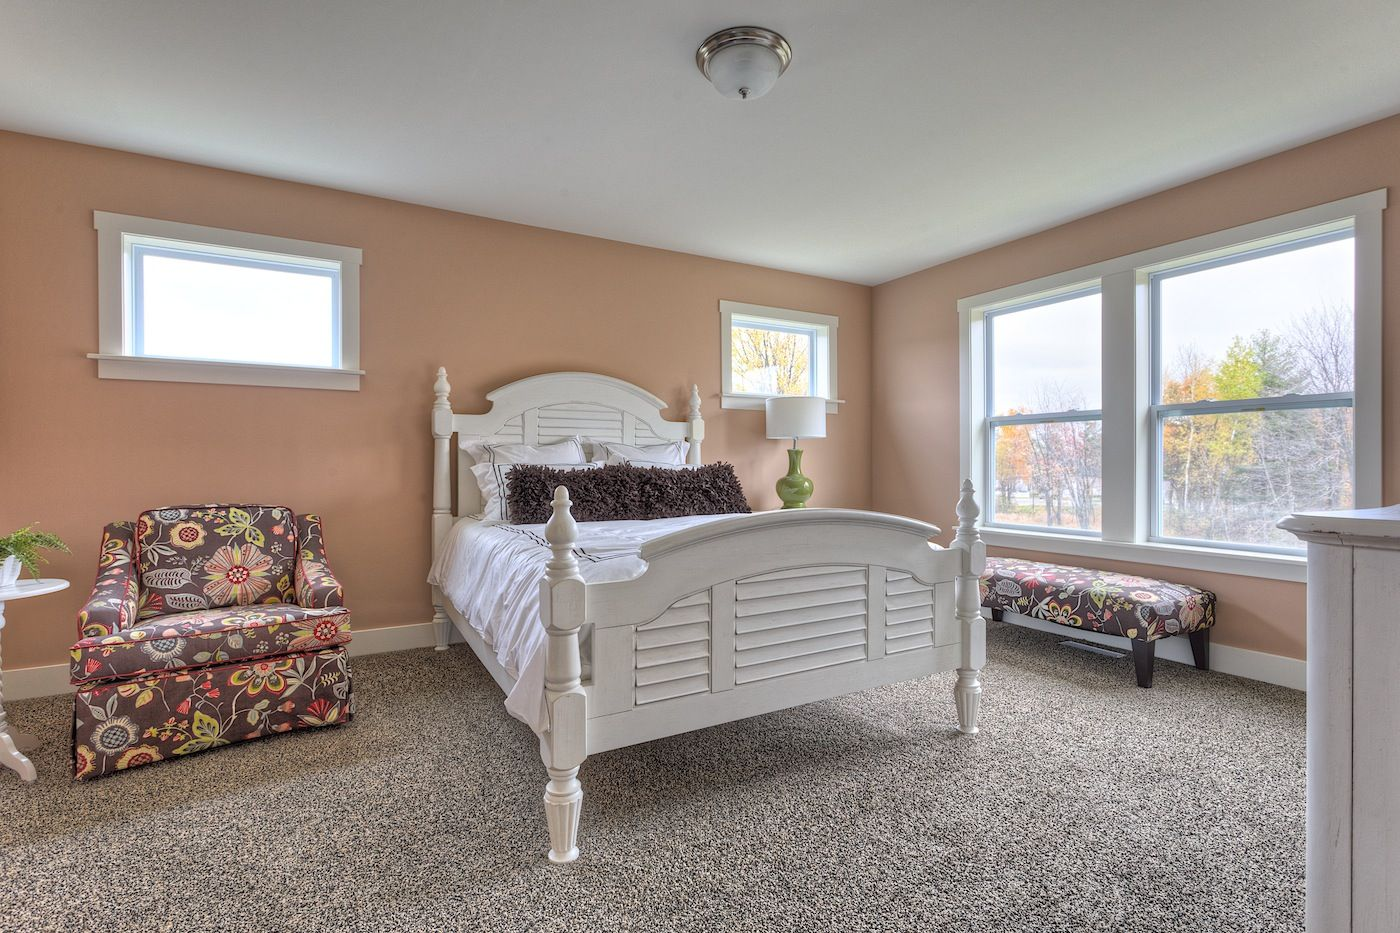 Bedroom featured in the Traditions 2200 V8.0b By Allen Edwin Homes in Benton Harbor, MI